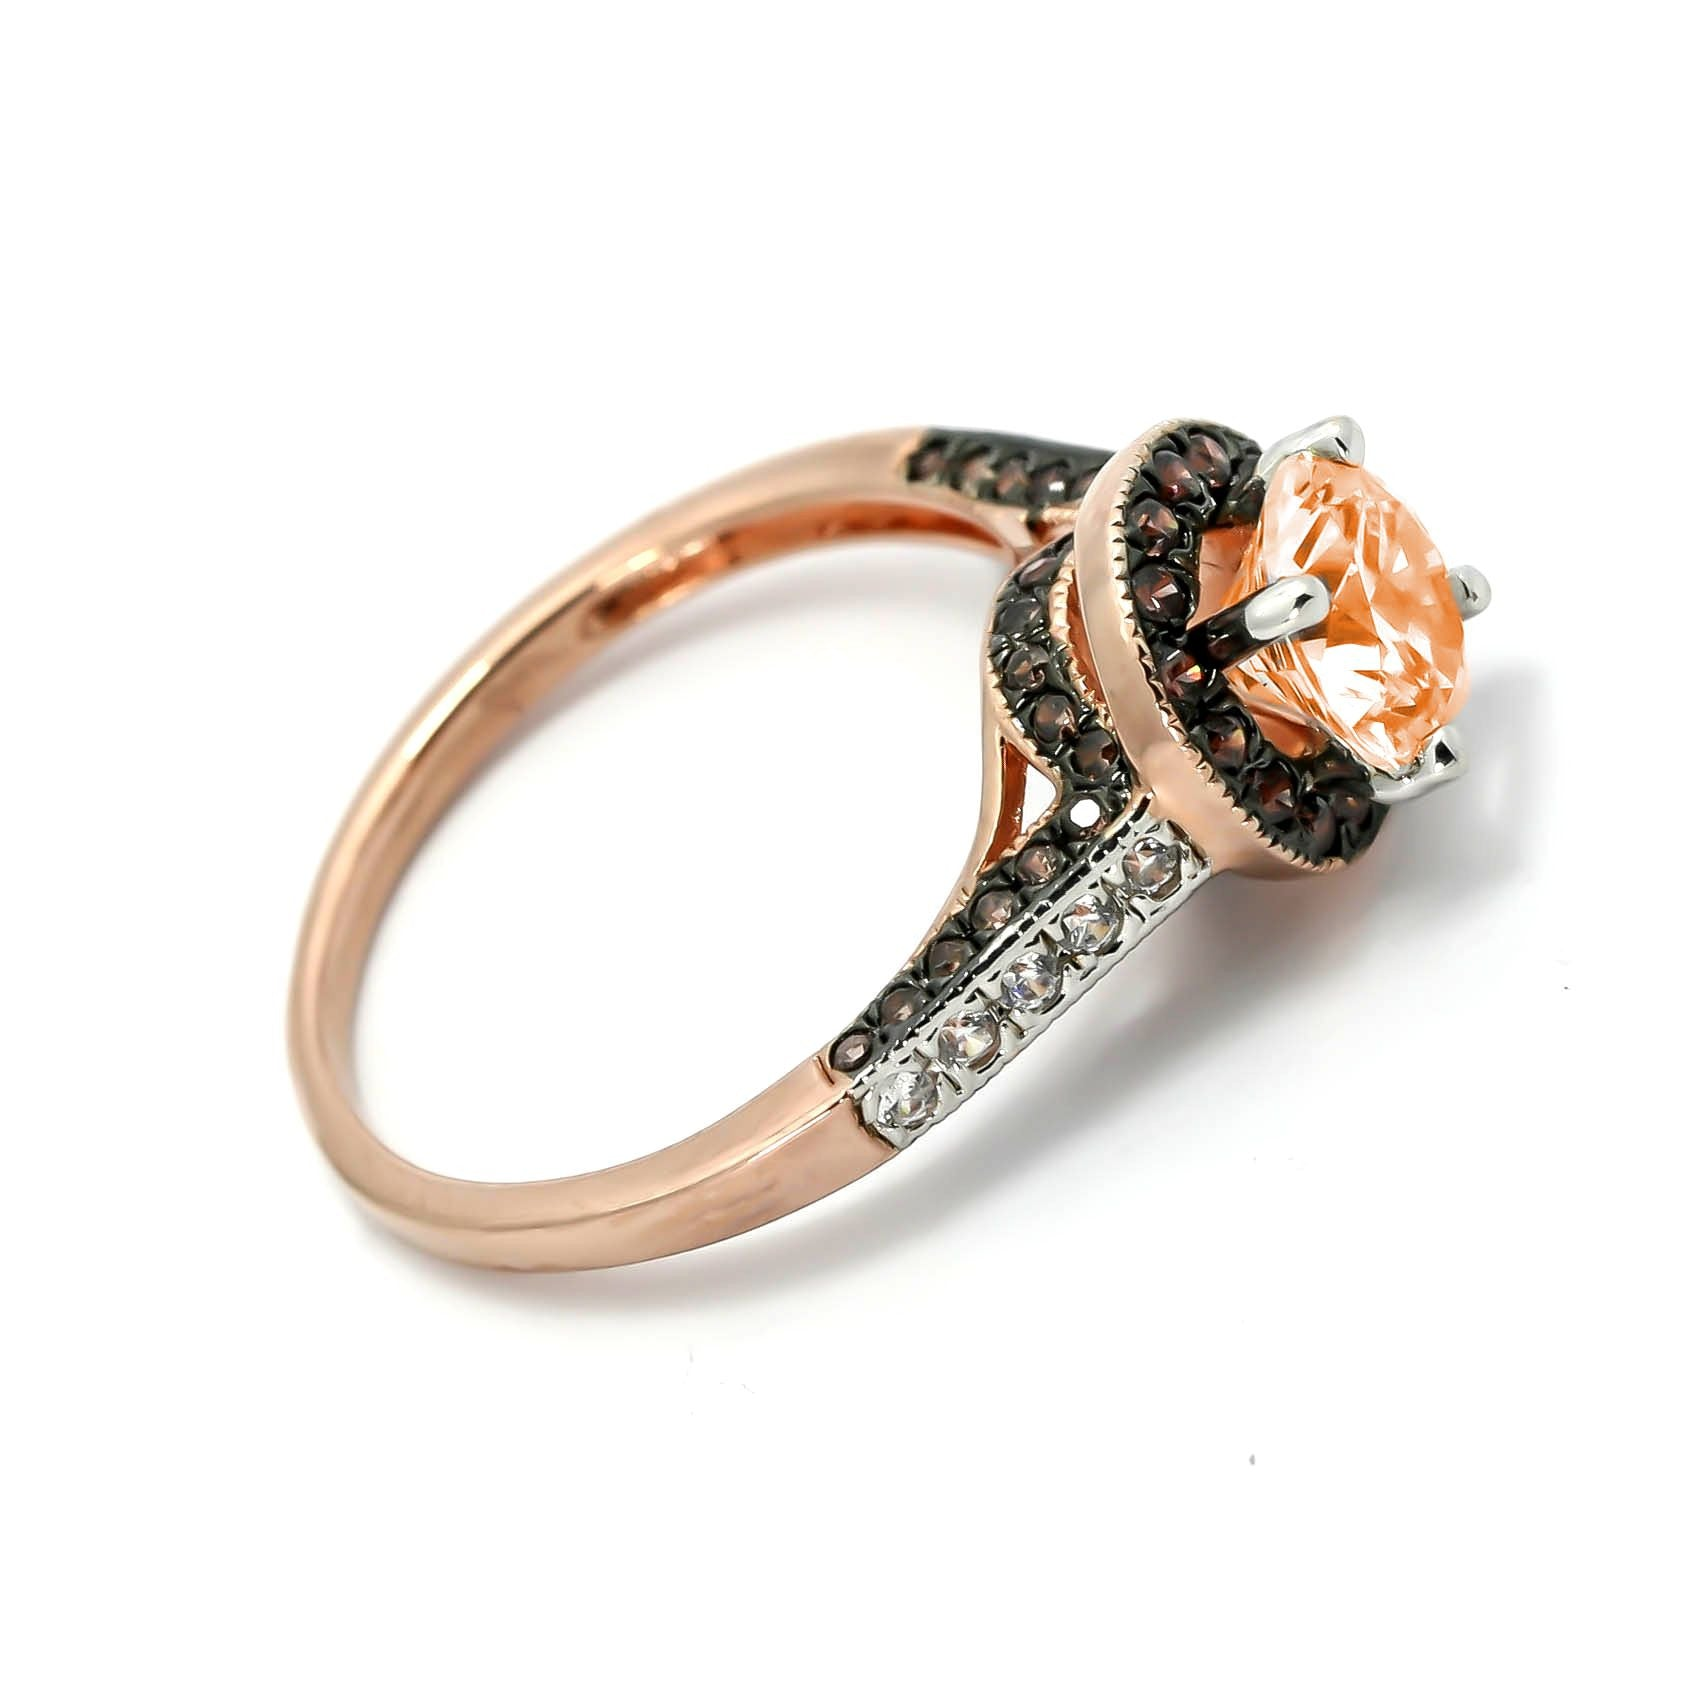 Morganite Engagement Ring, Unique 1 Carat Floating Halo Rose Gold, White & Brown Diamonds, Anniversary Ring - MG94641ER